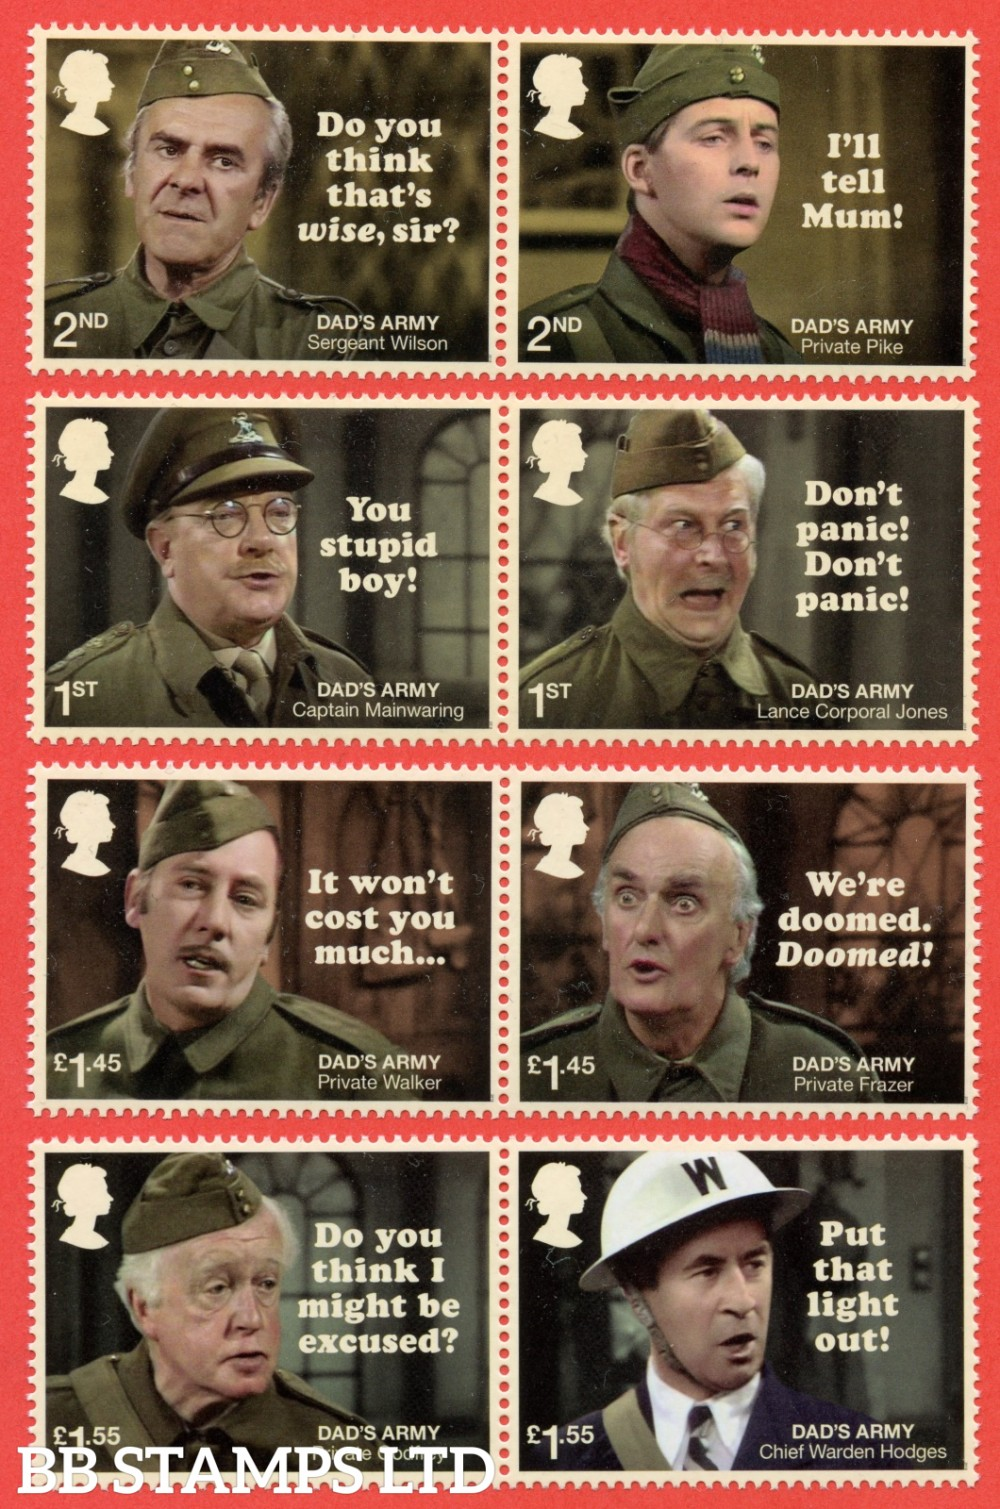 2018 Dads Army 50th Anniversary